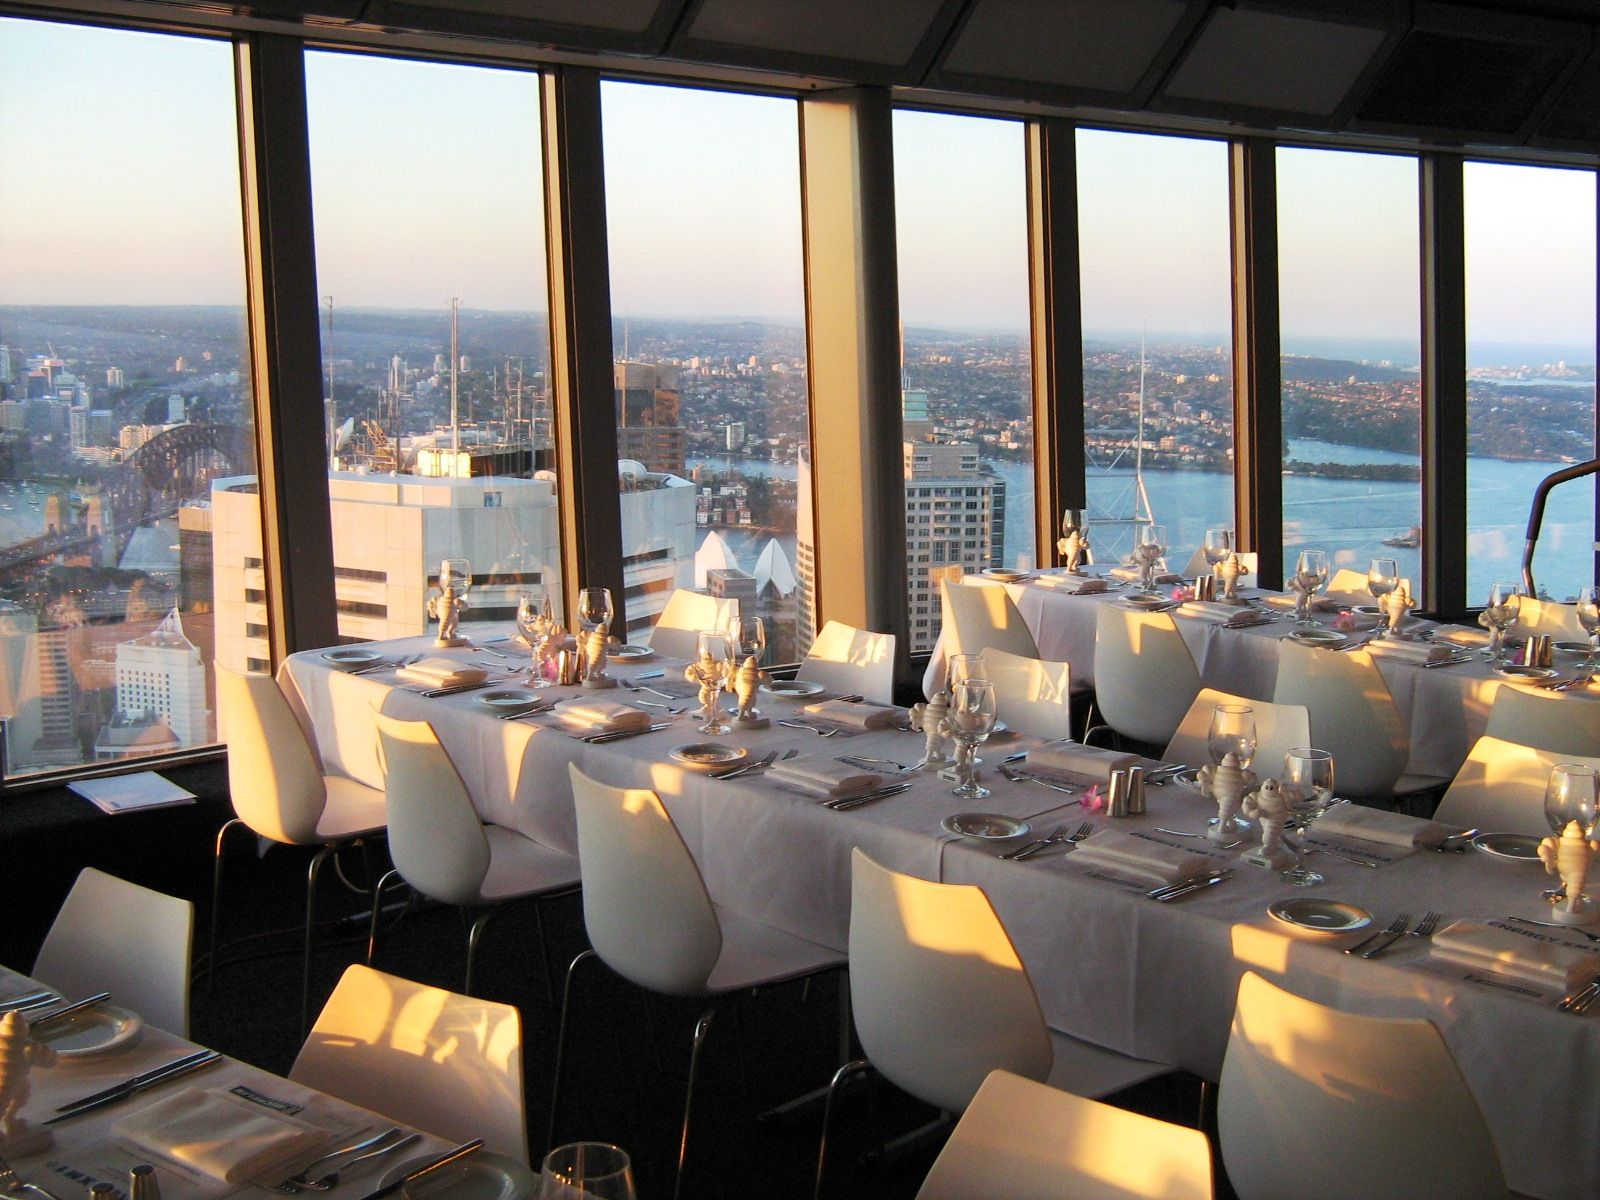 Amazing Wedding Venue In Sydney With 360 Degree Views Of